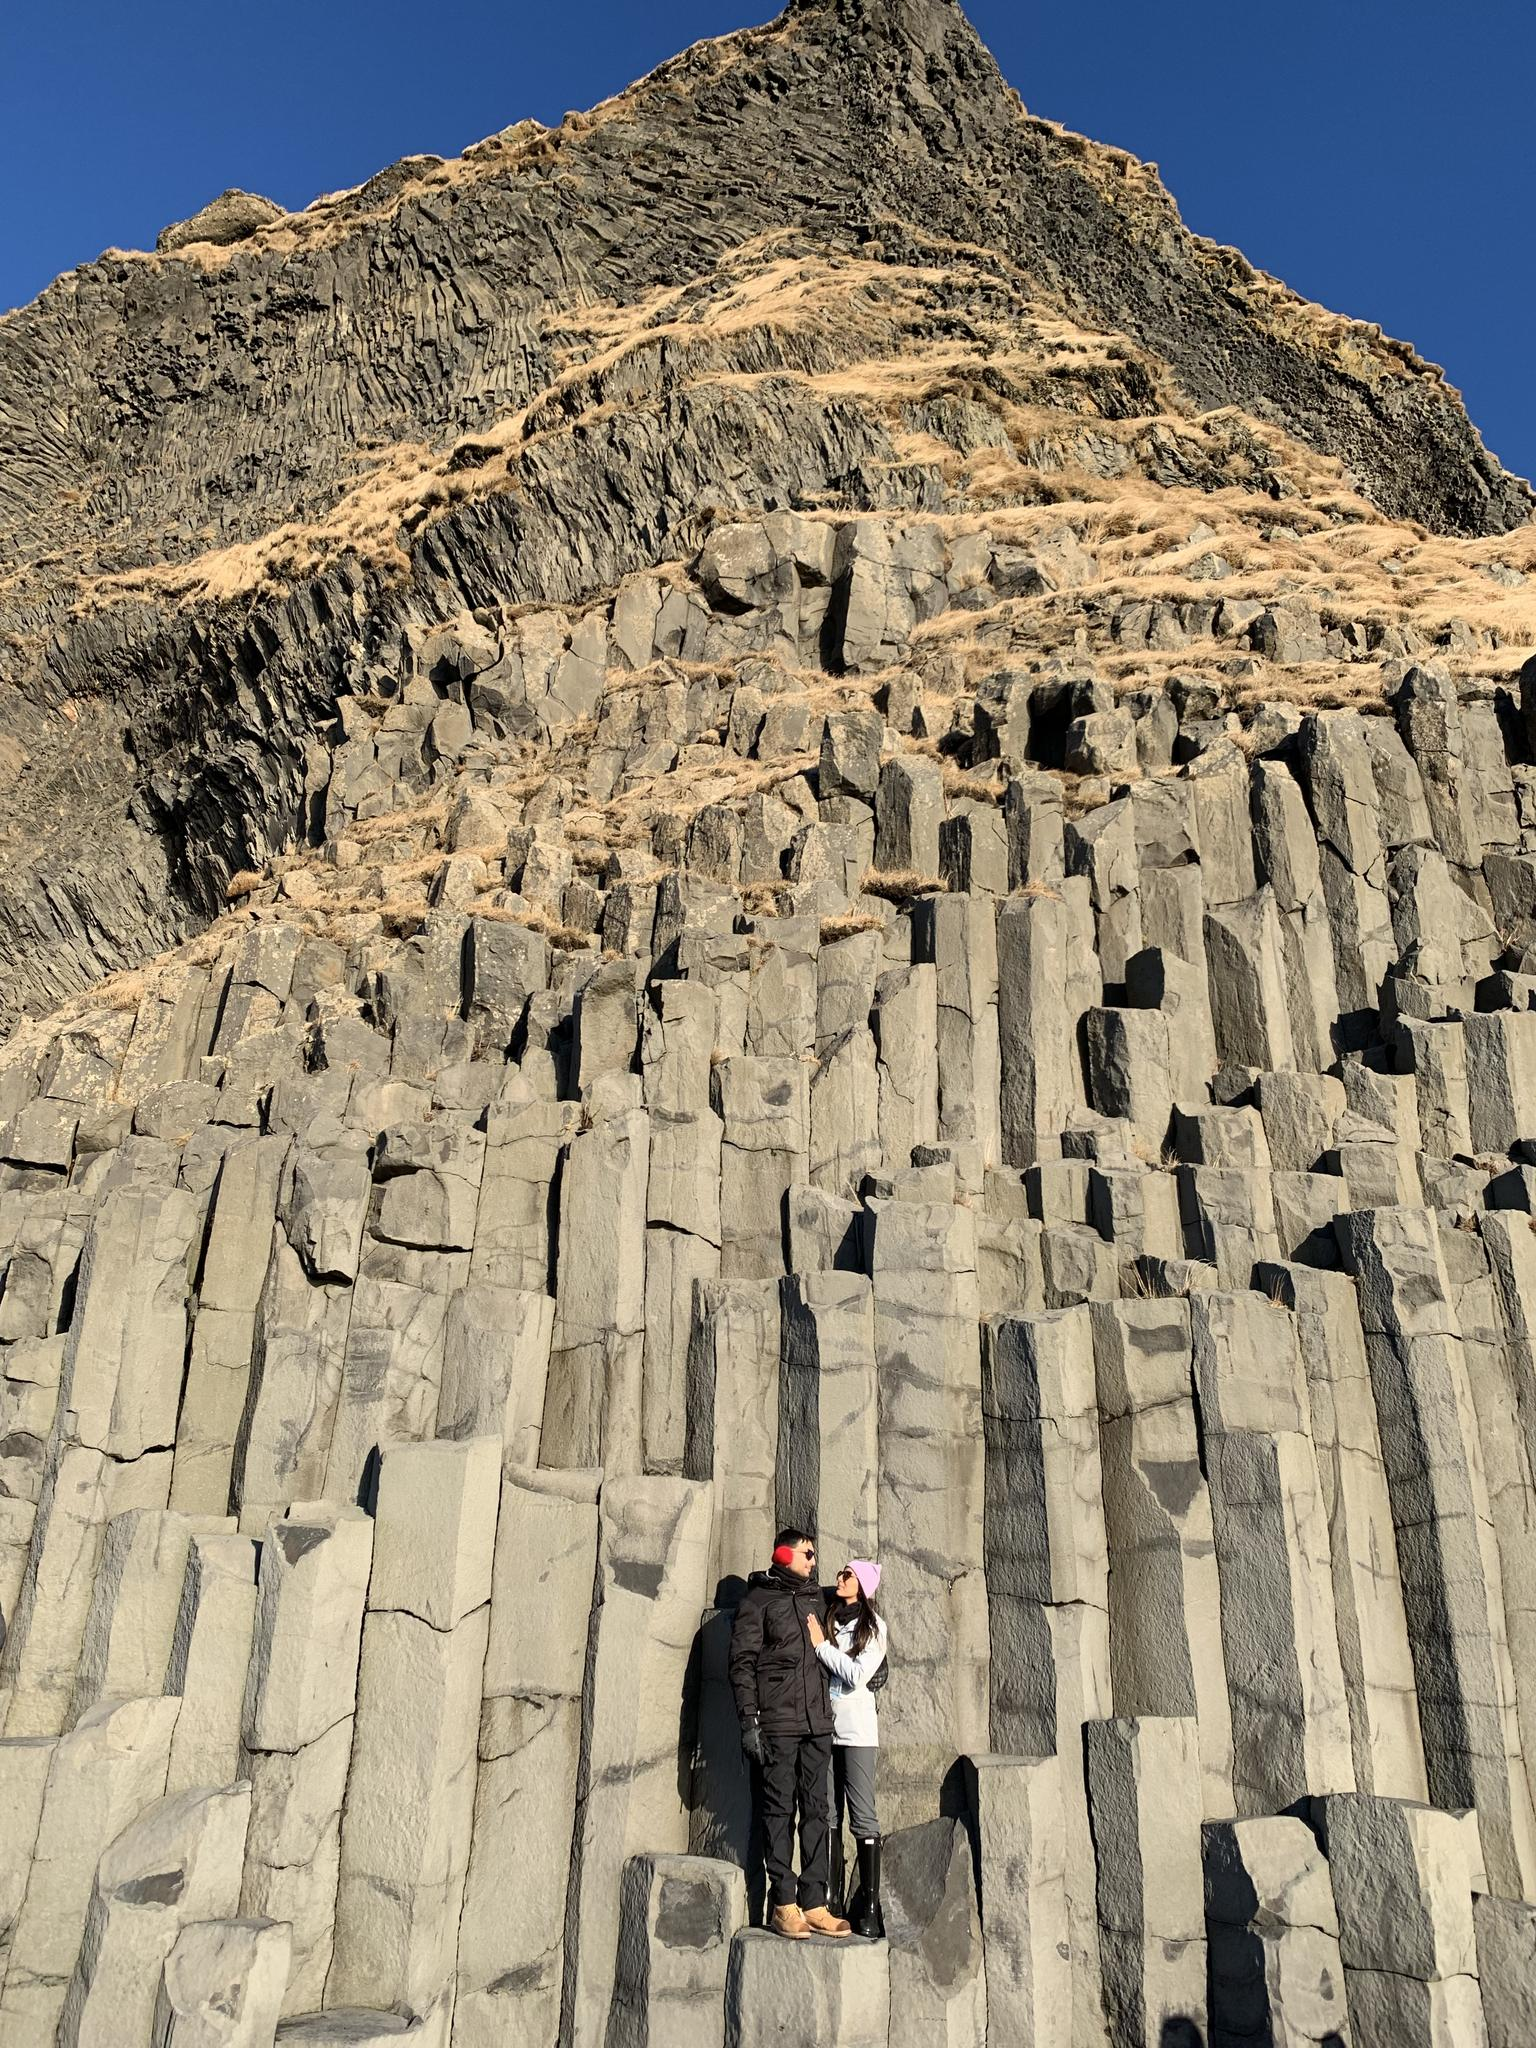 Basalt Columns at Reynisfjara, Iceland - February 2019